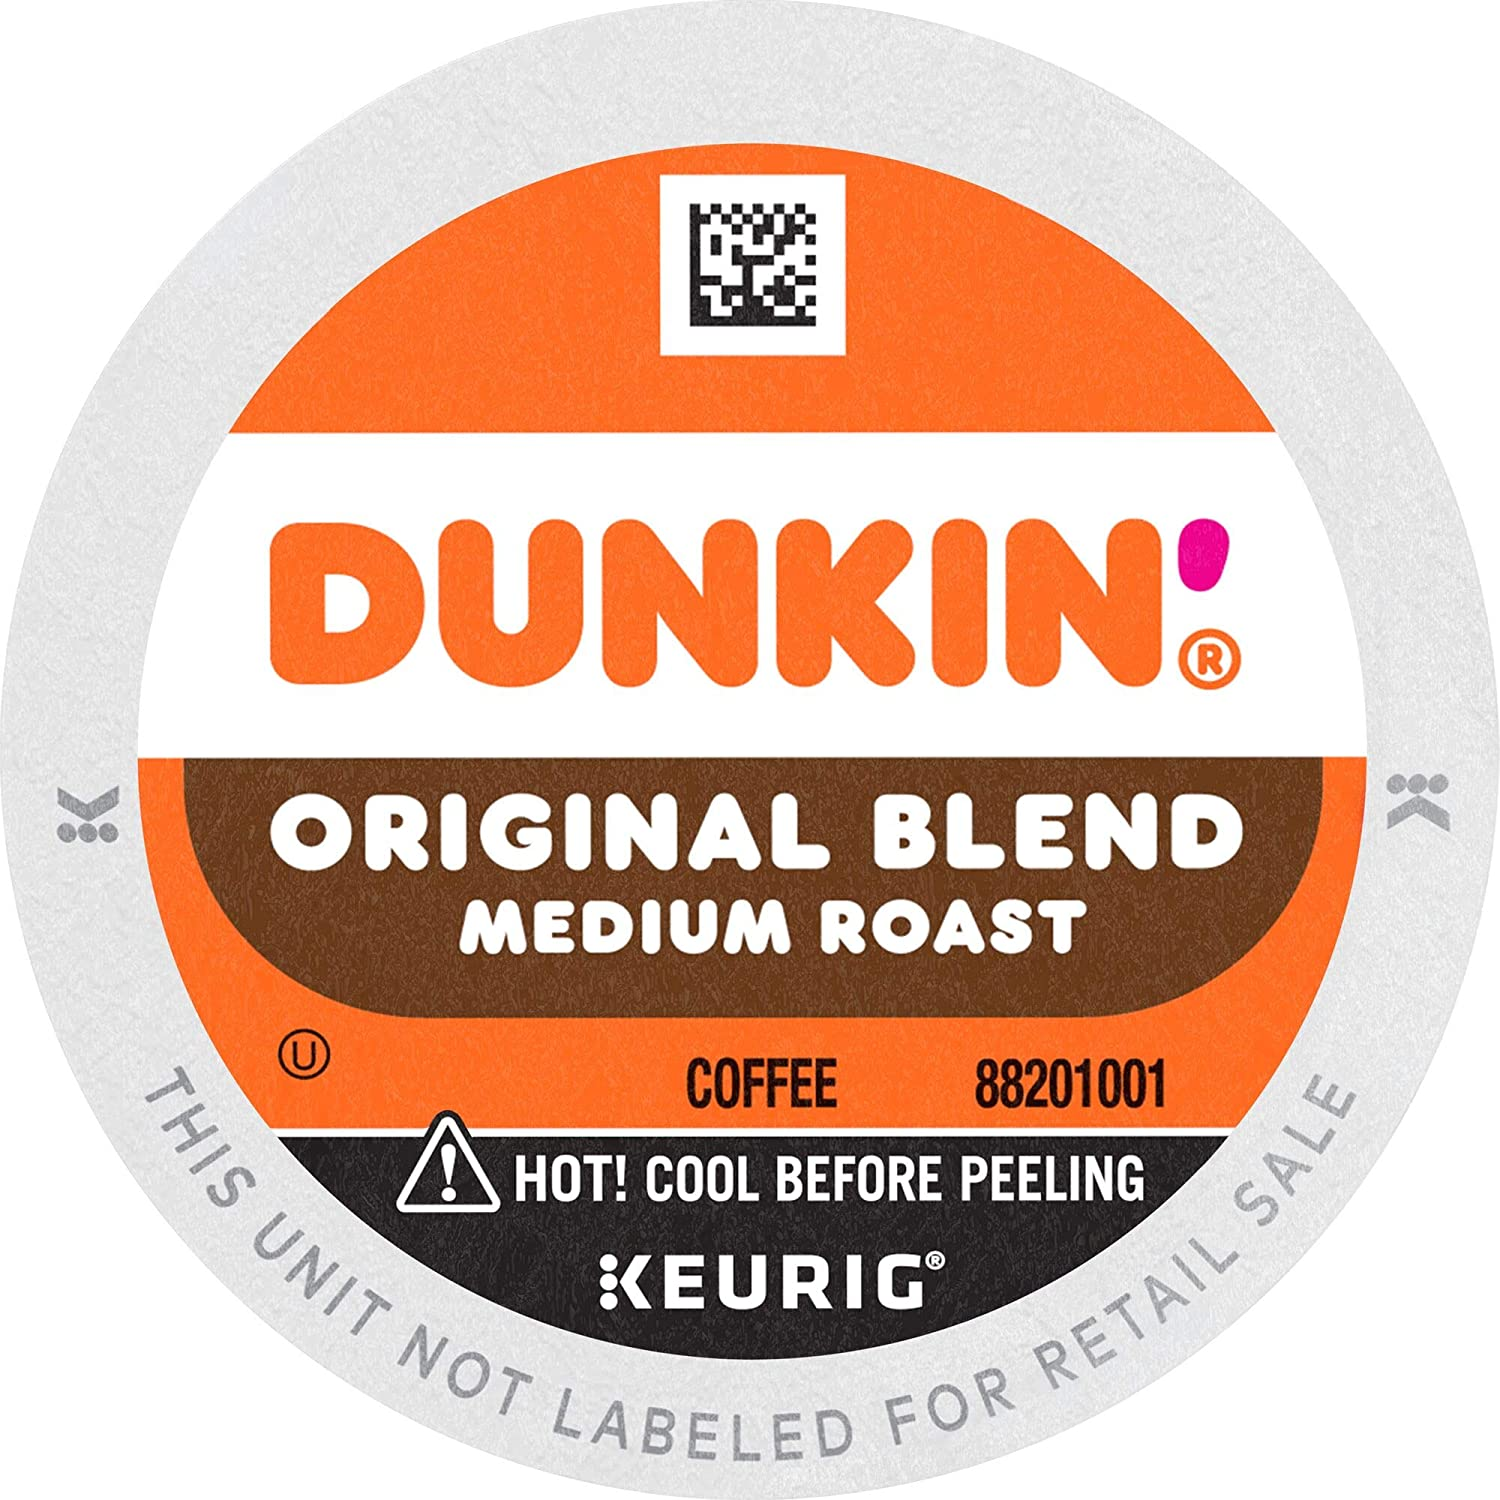 Dunkin' Original Blend Medium Roast Coffee, 32 K Cups for Keurig Coffee Makers